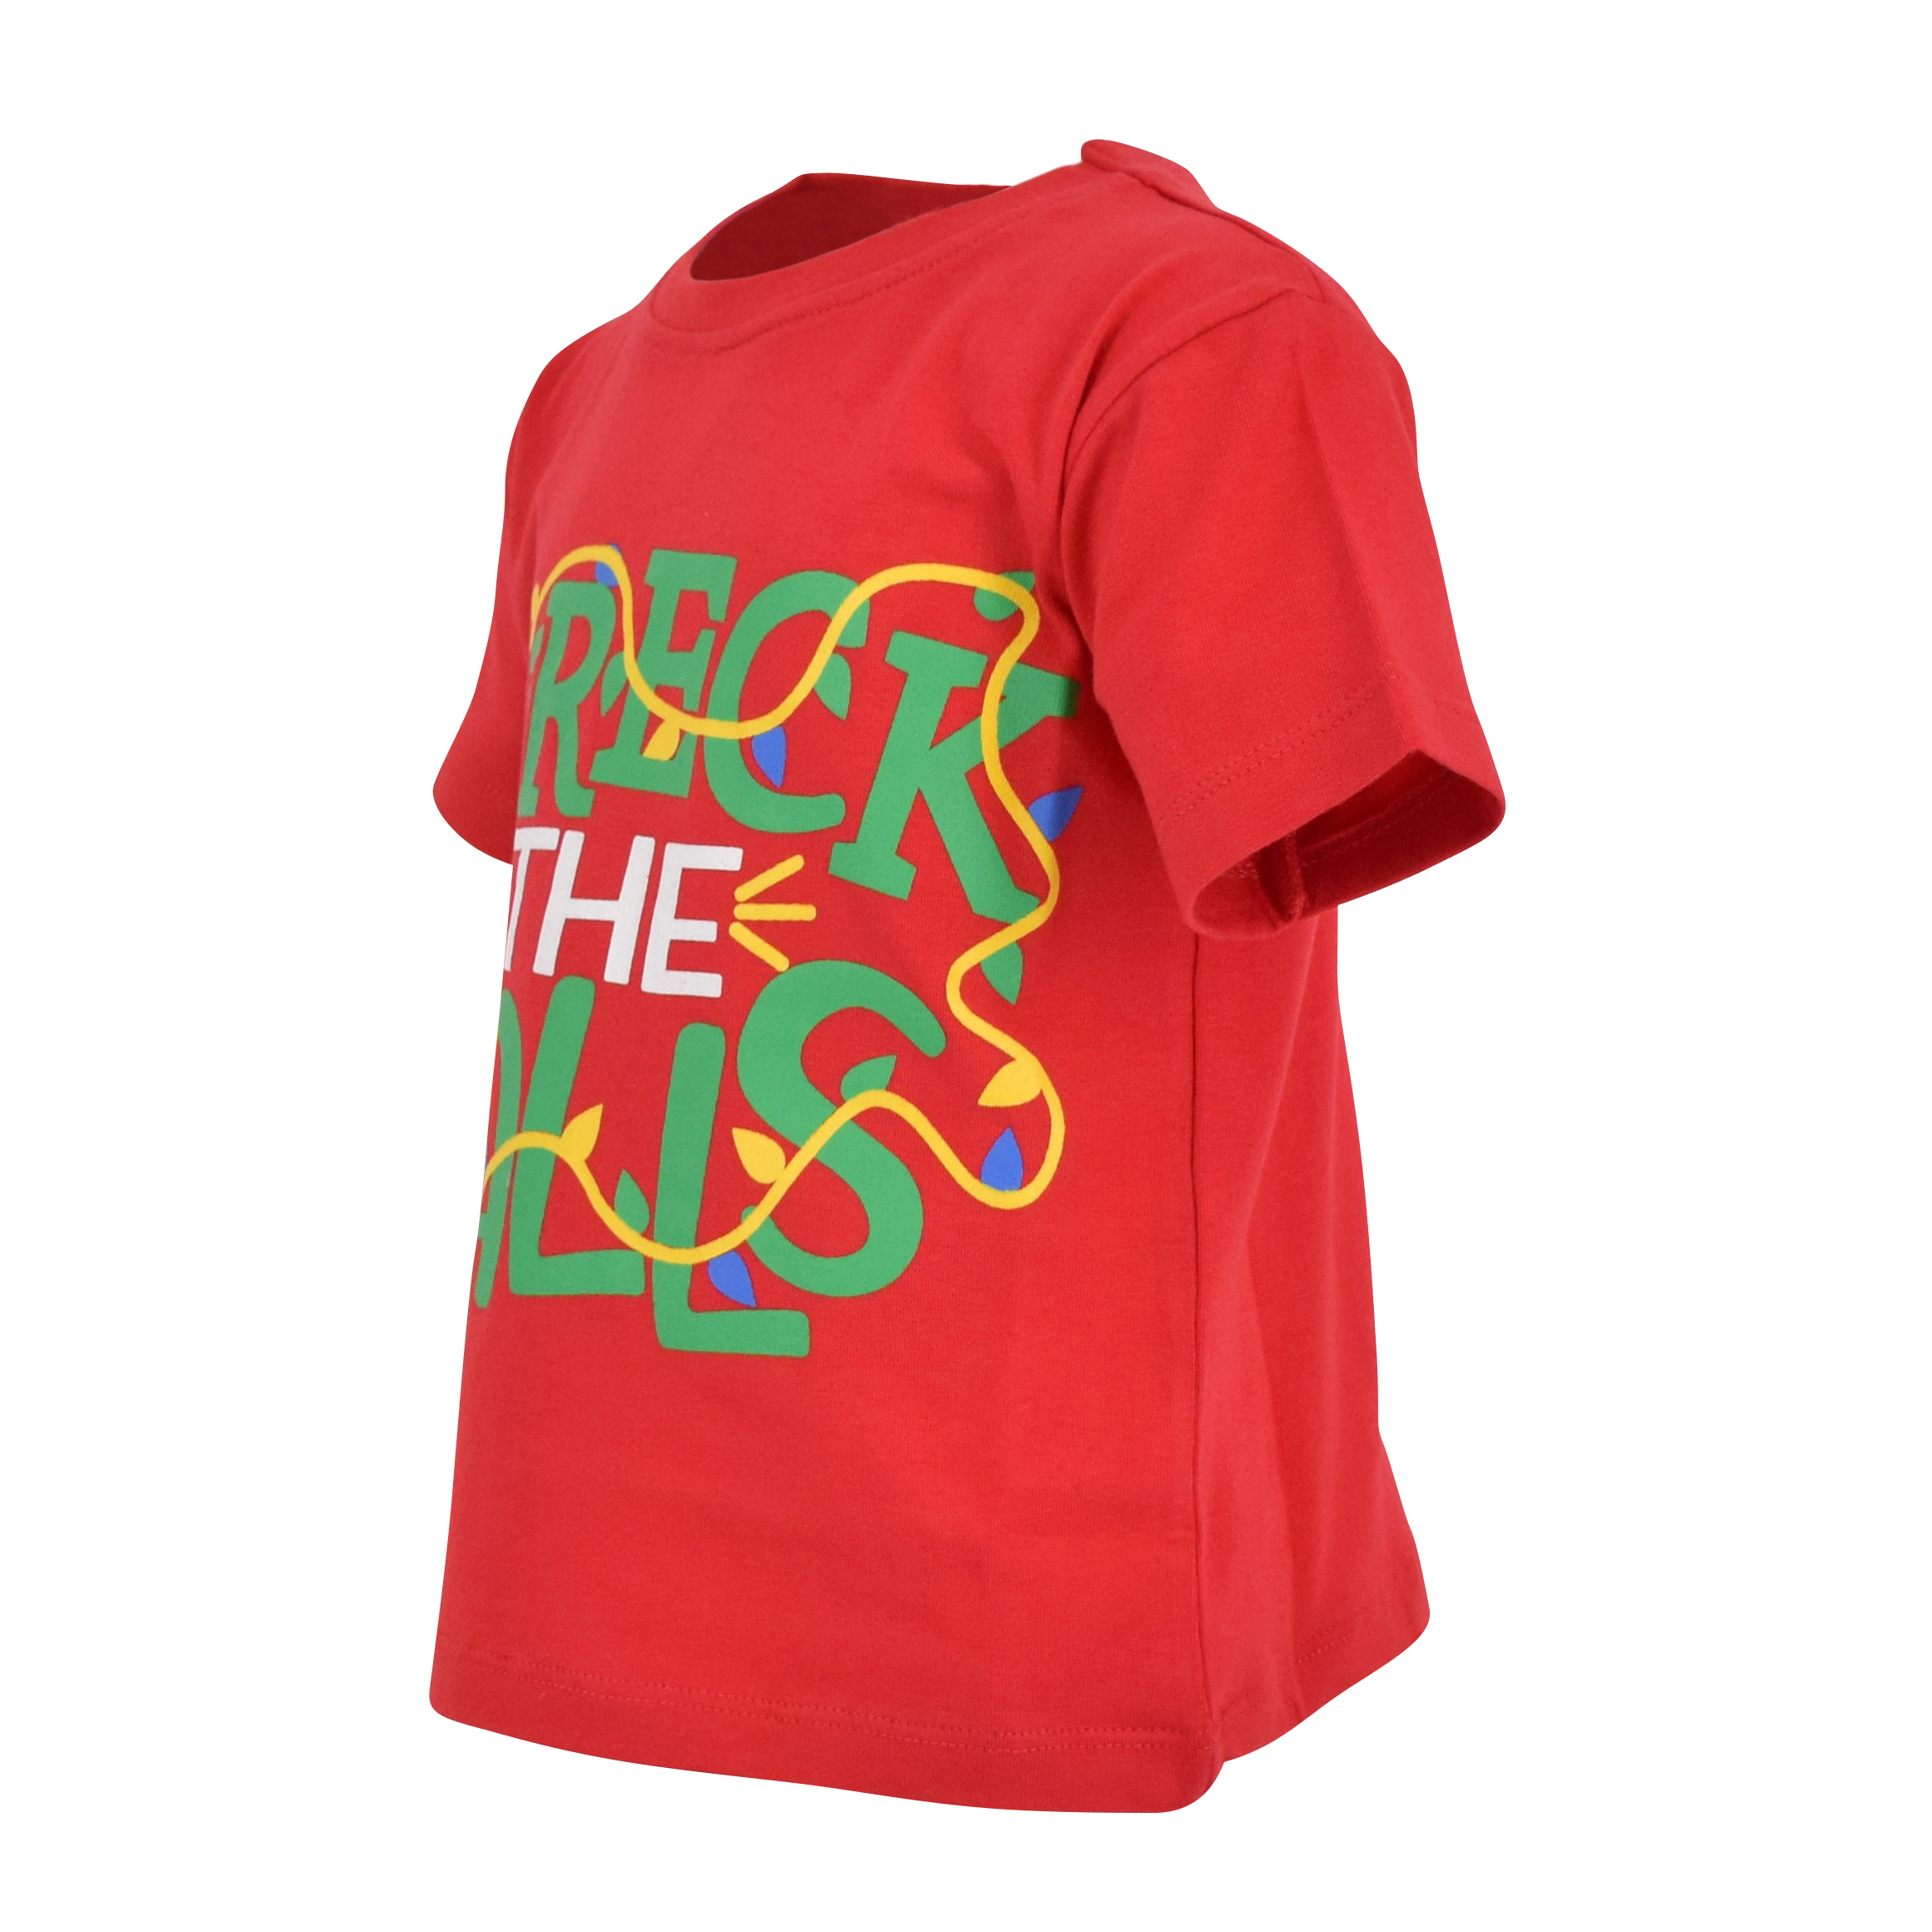 Boys Wreck The Halls Christmas T Shirt 2t 3t 4t 5 6 7 8 Toddler Kids Clothes